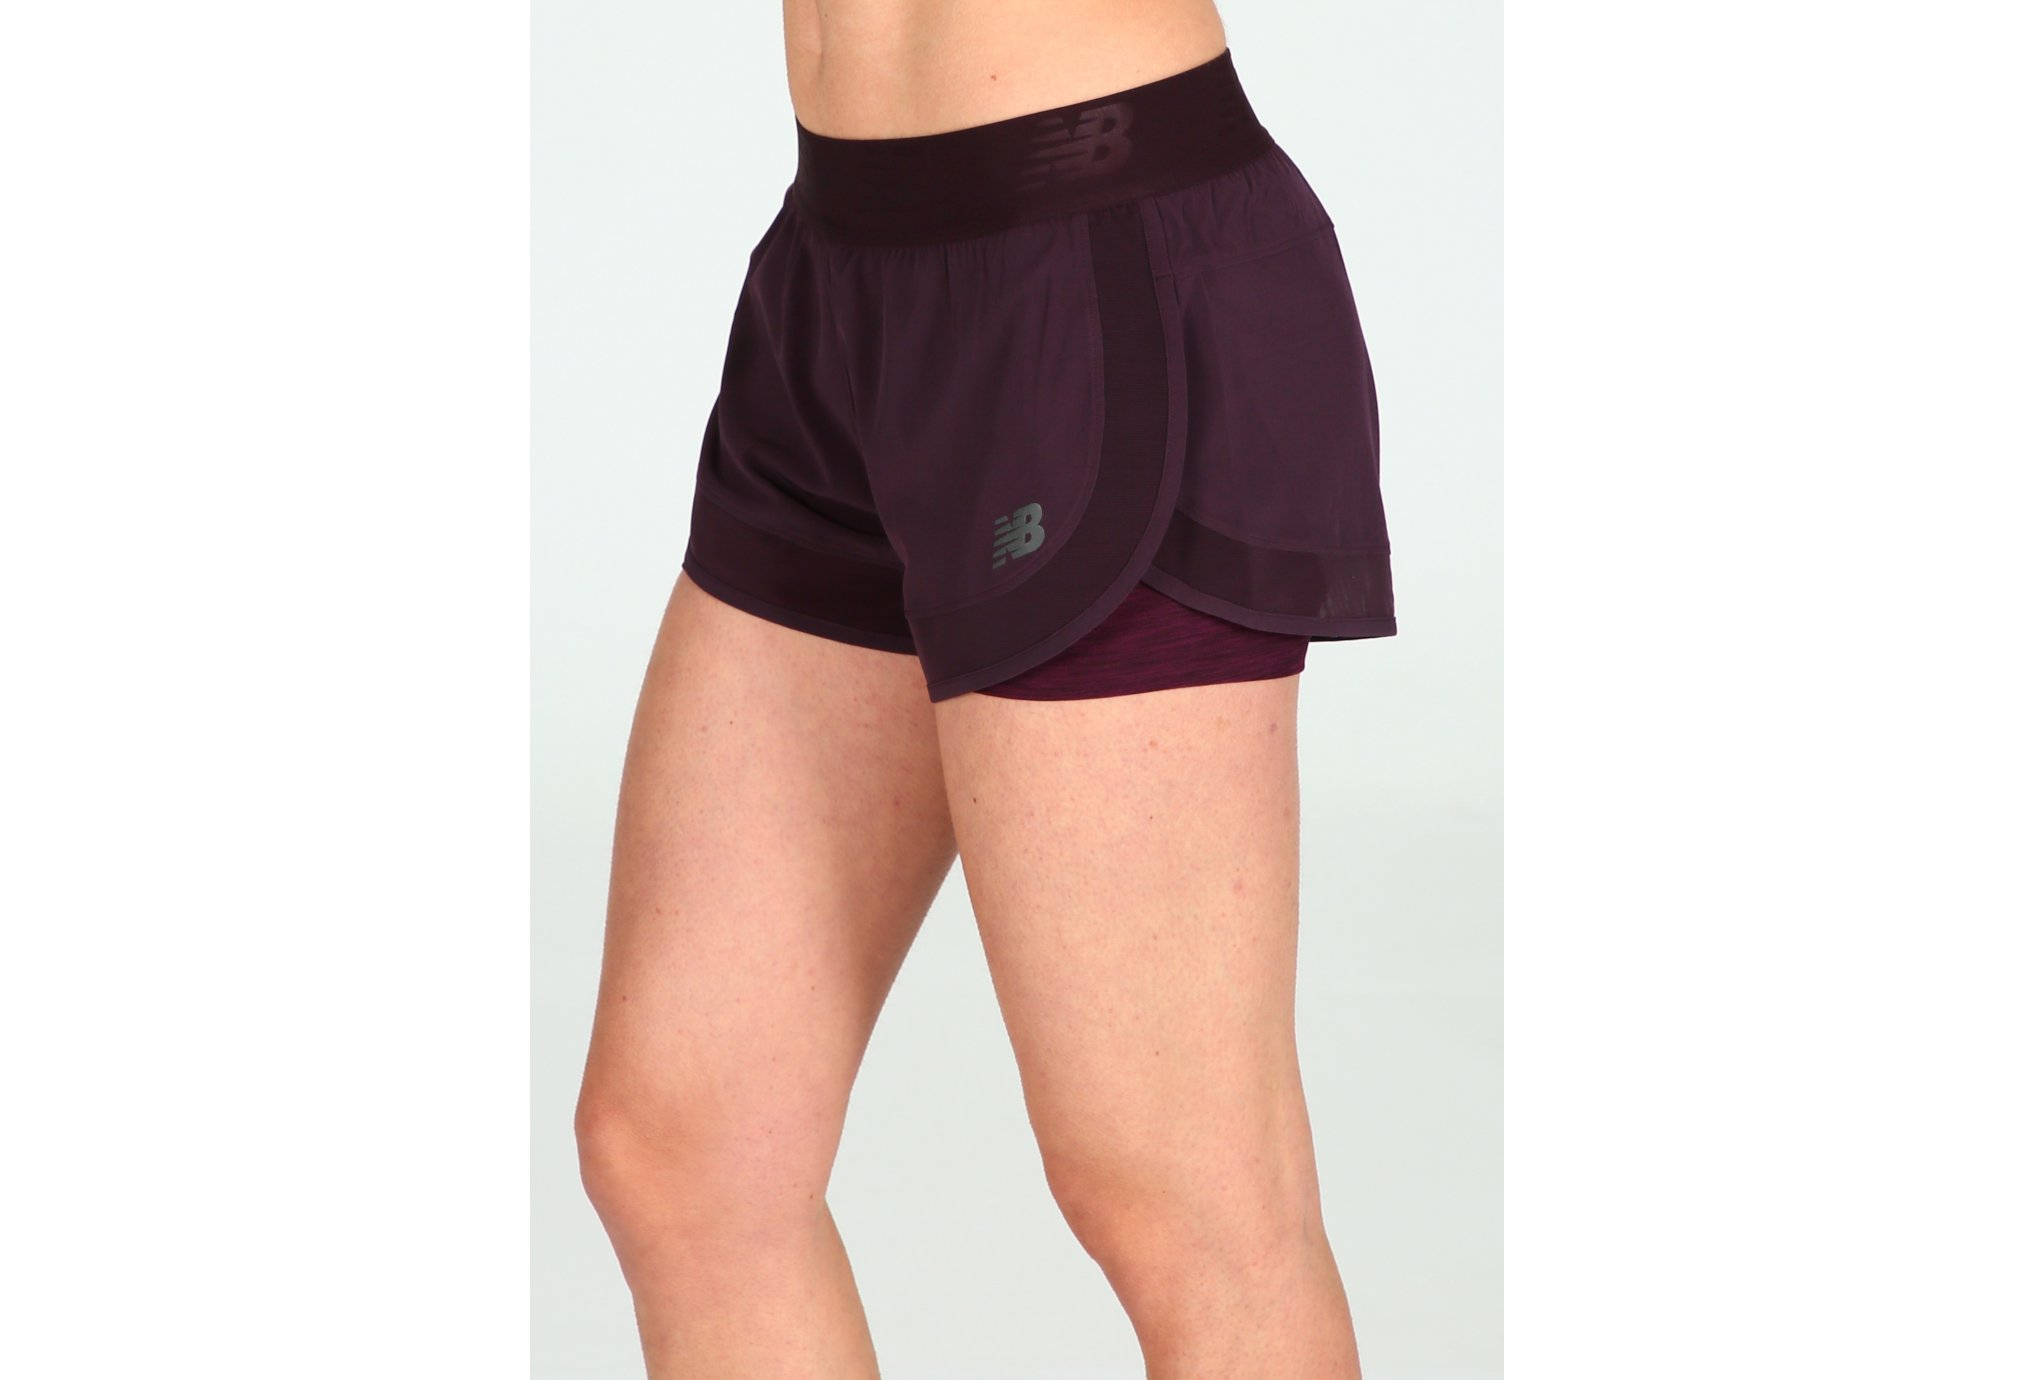 New Balance Transform 2 in 1 W Diététique Vêtements femme